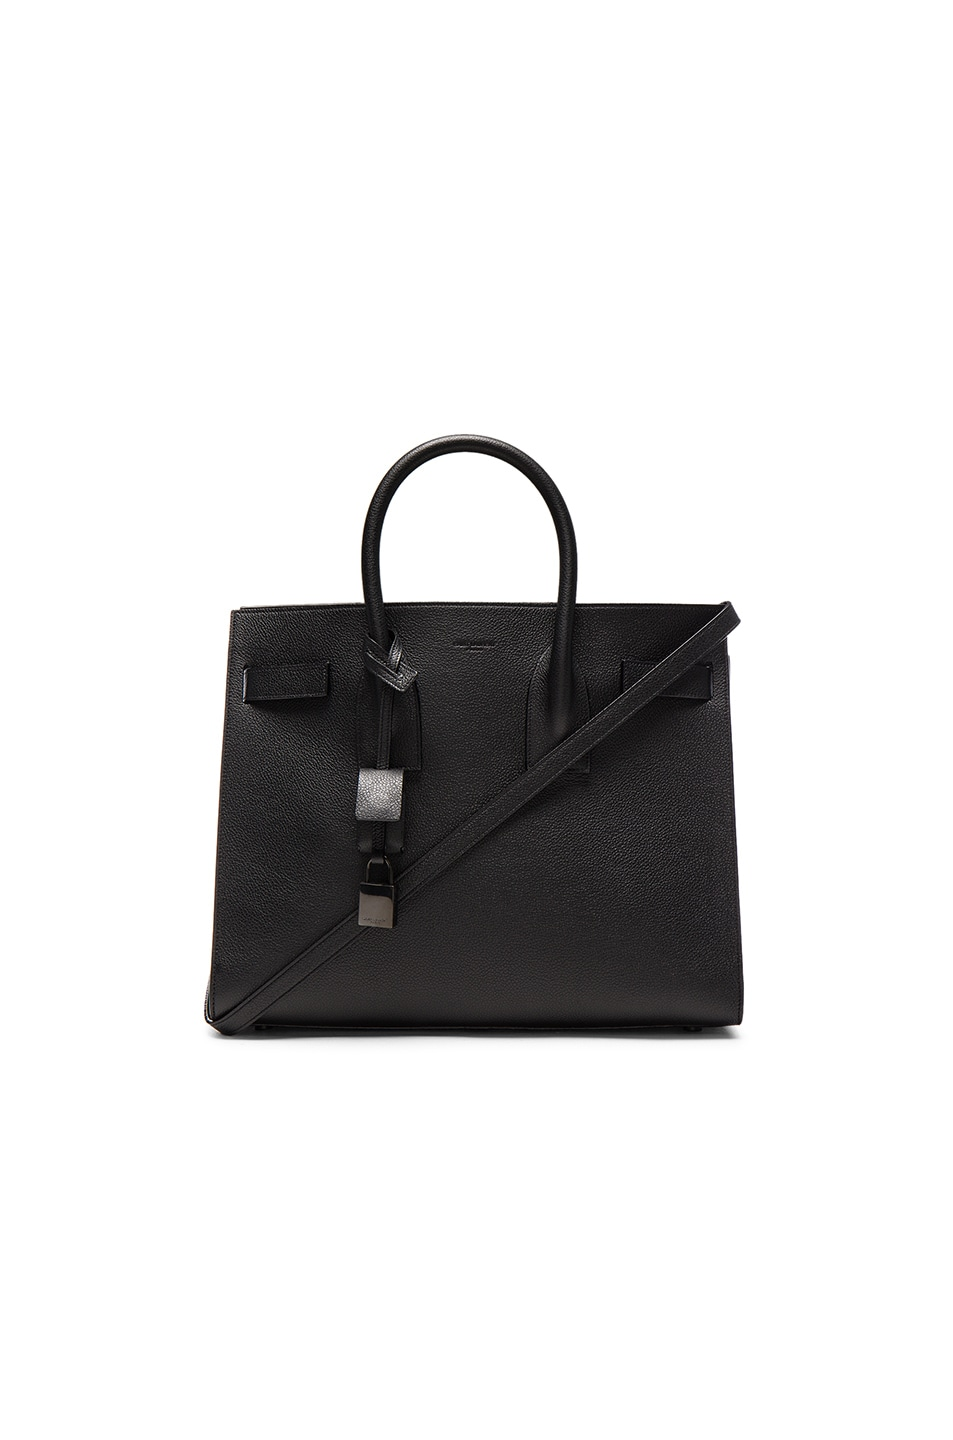 small Sac de Jour tote - Black Saint Laurent 1rsk04